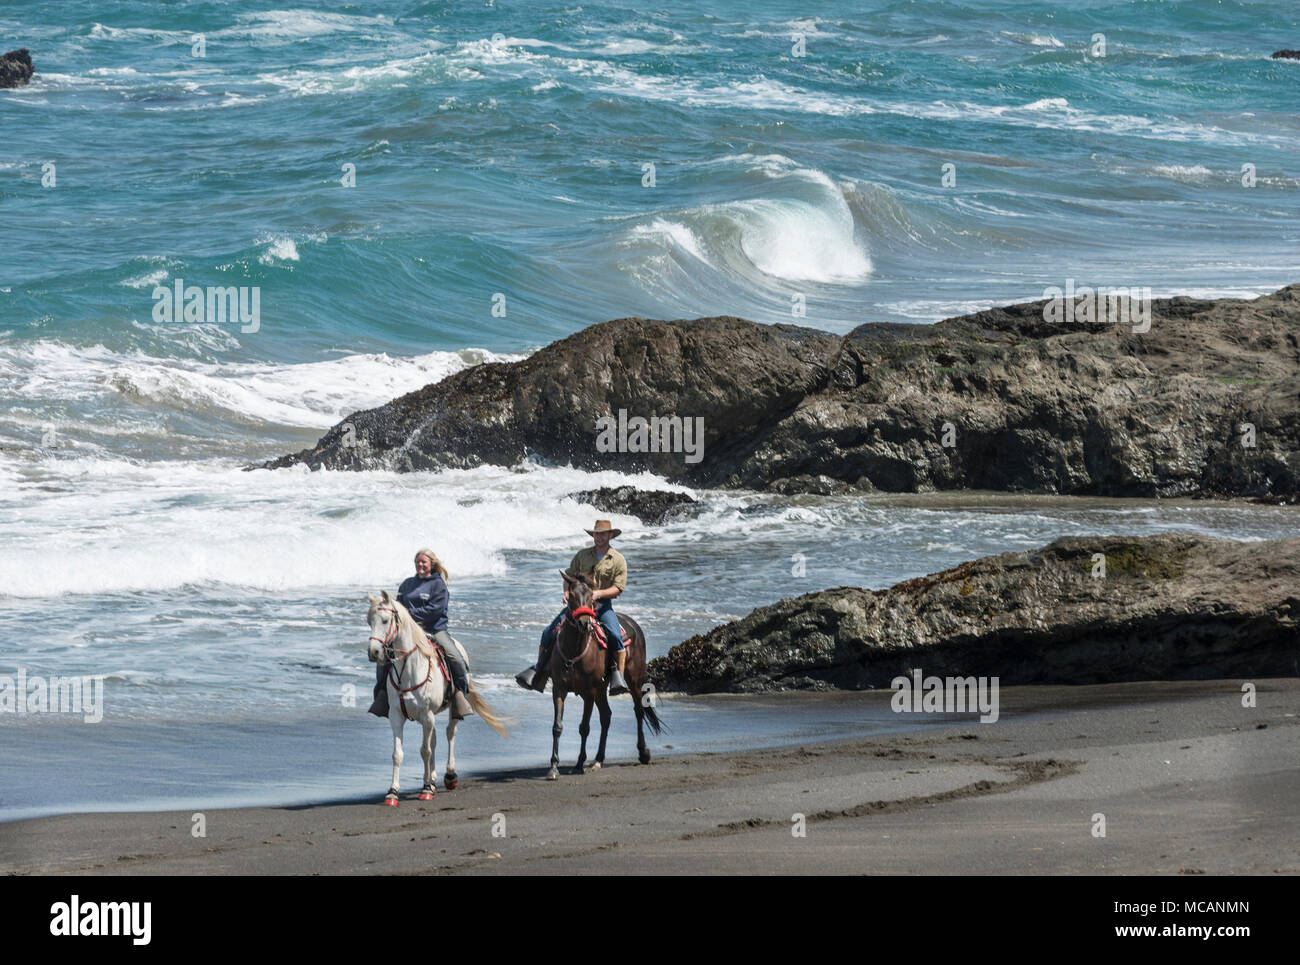 Horseback riders from Ricochet Ridge Ranch enjoy Ten Mile Beach on the Pacific Coast in Fort Bragg, California - Stock Image